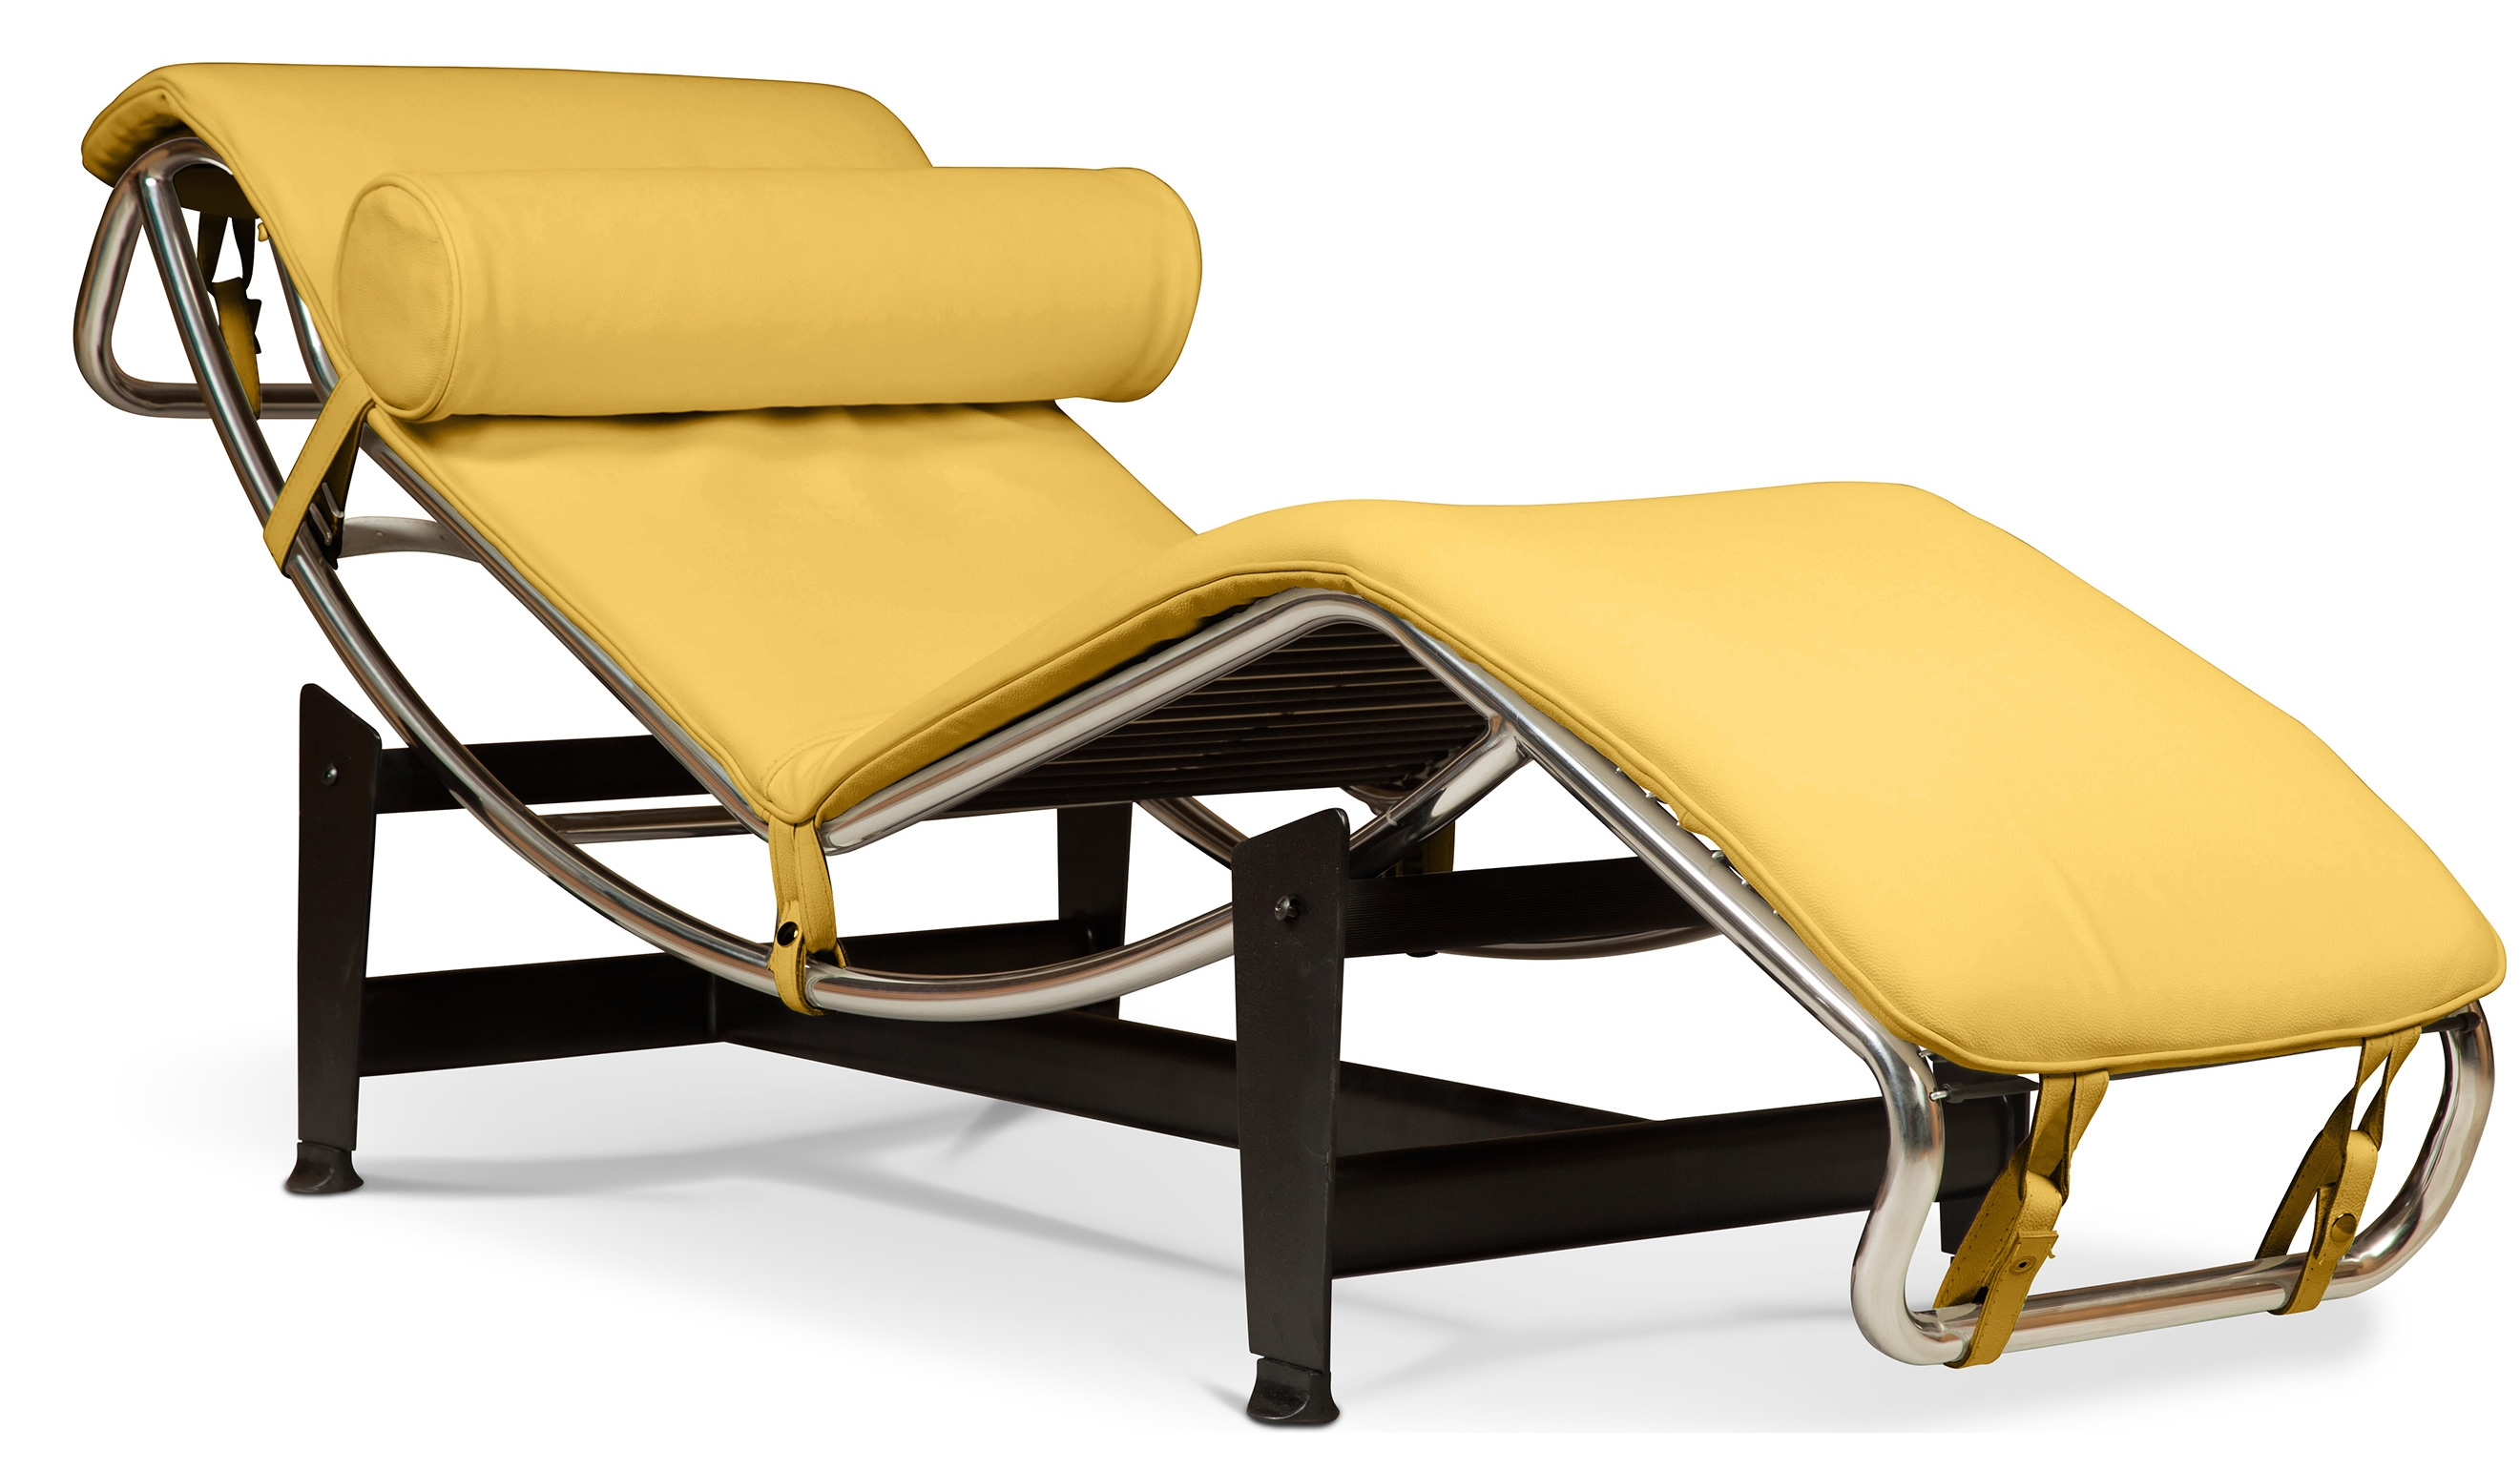 Chaise longue simili jaune karly for Chaise longue fr